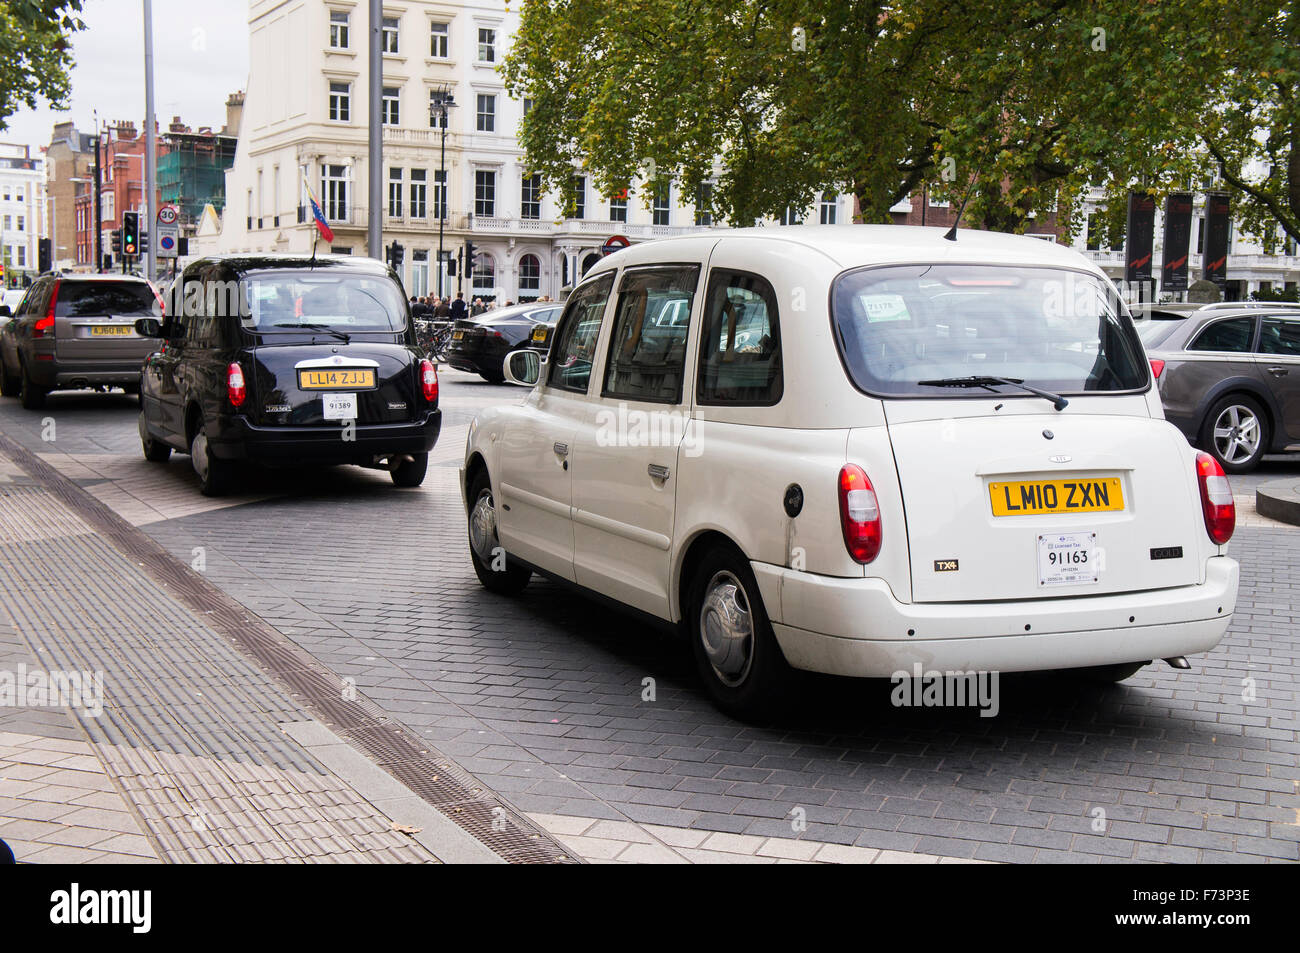 London taxi, hackney carriage, white, black cab, hack - Stock Image